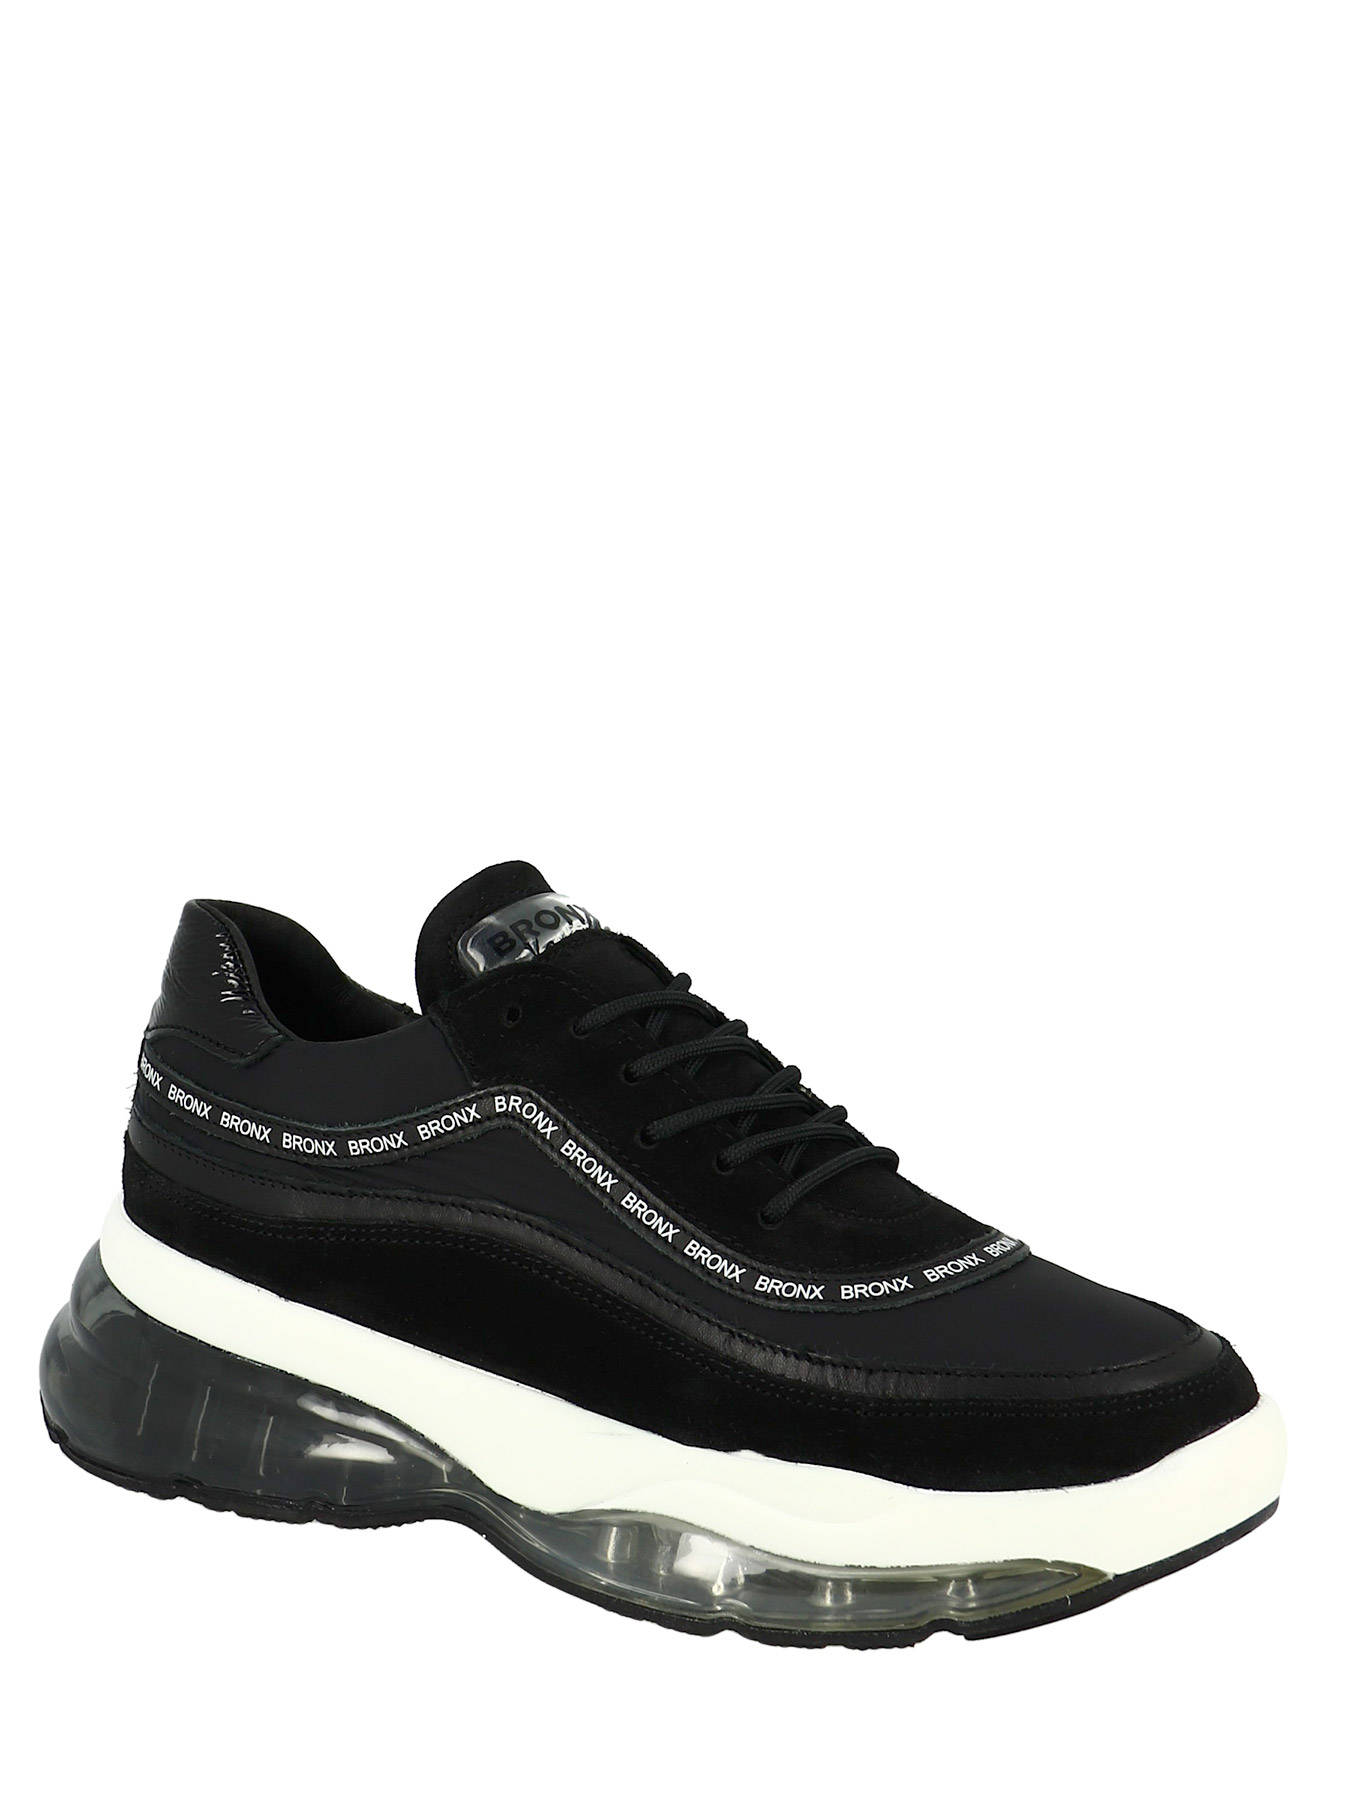 Bronx Sneakers 66260.CP01 - best prices